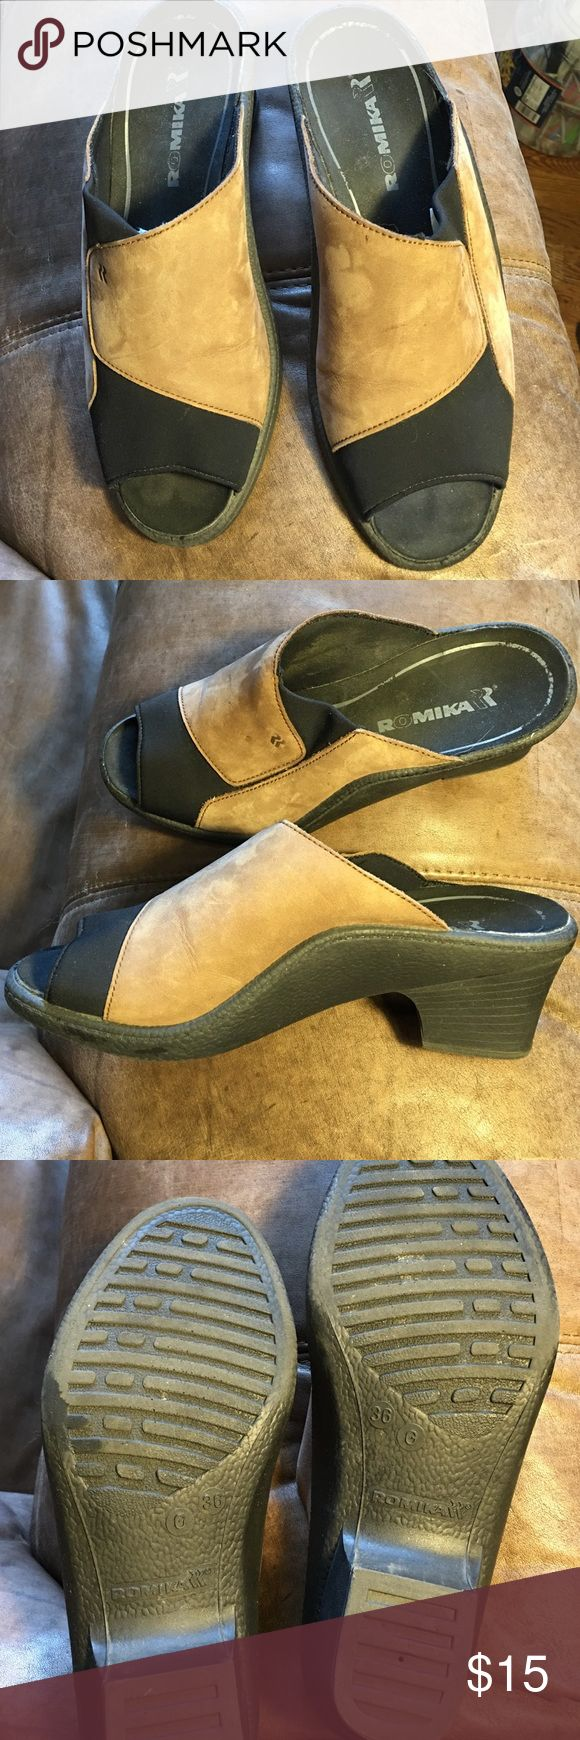 Romika Shoes size 36 Brown /Black Romika Shoes size 36 Brown /Black.  Has been worn once or twice.  Also have it in size 37.  Very comfortable Romika Shoes Wedges